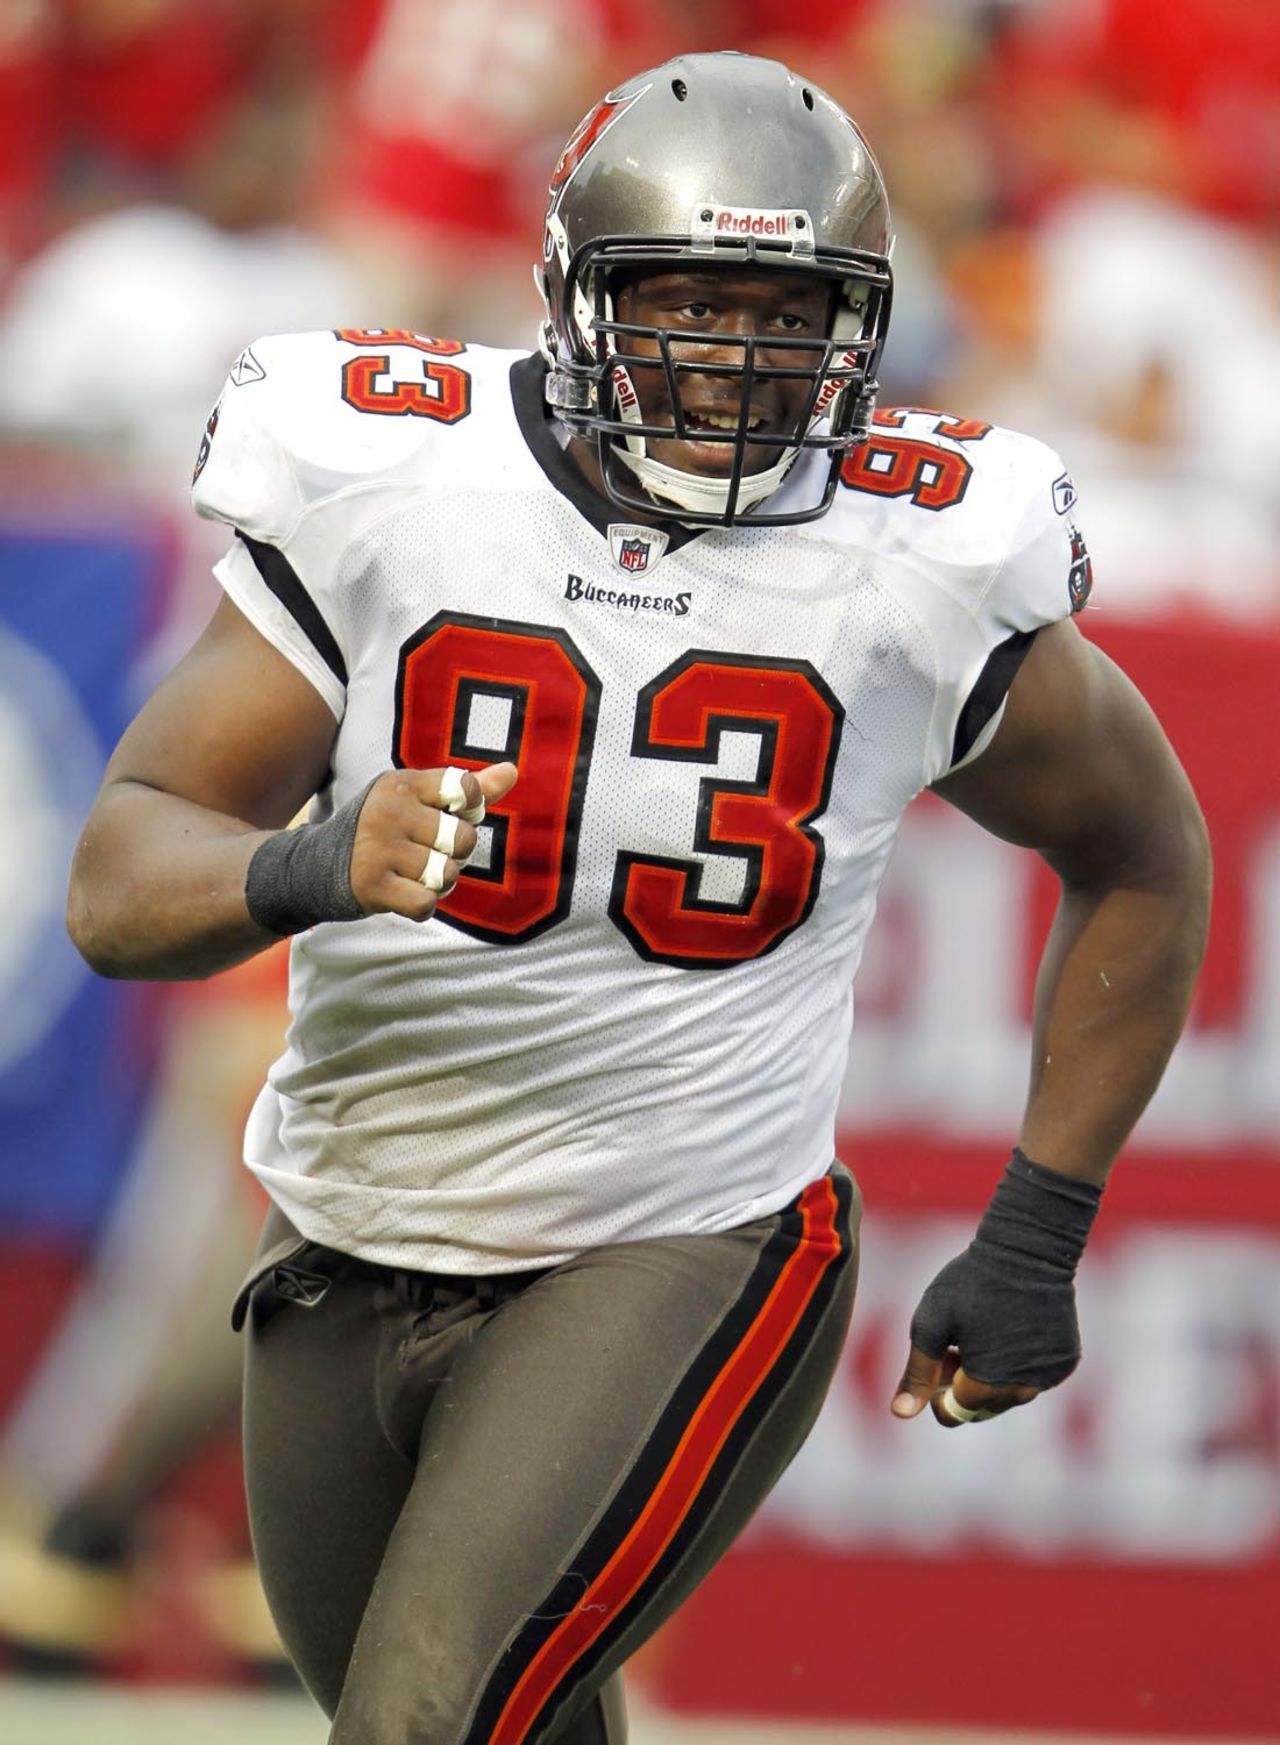 Gerald Mccoy Wallpapers High Quality